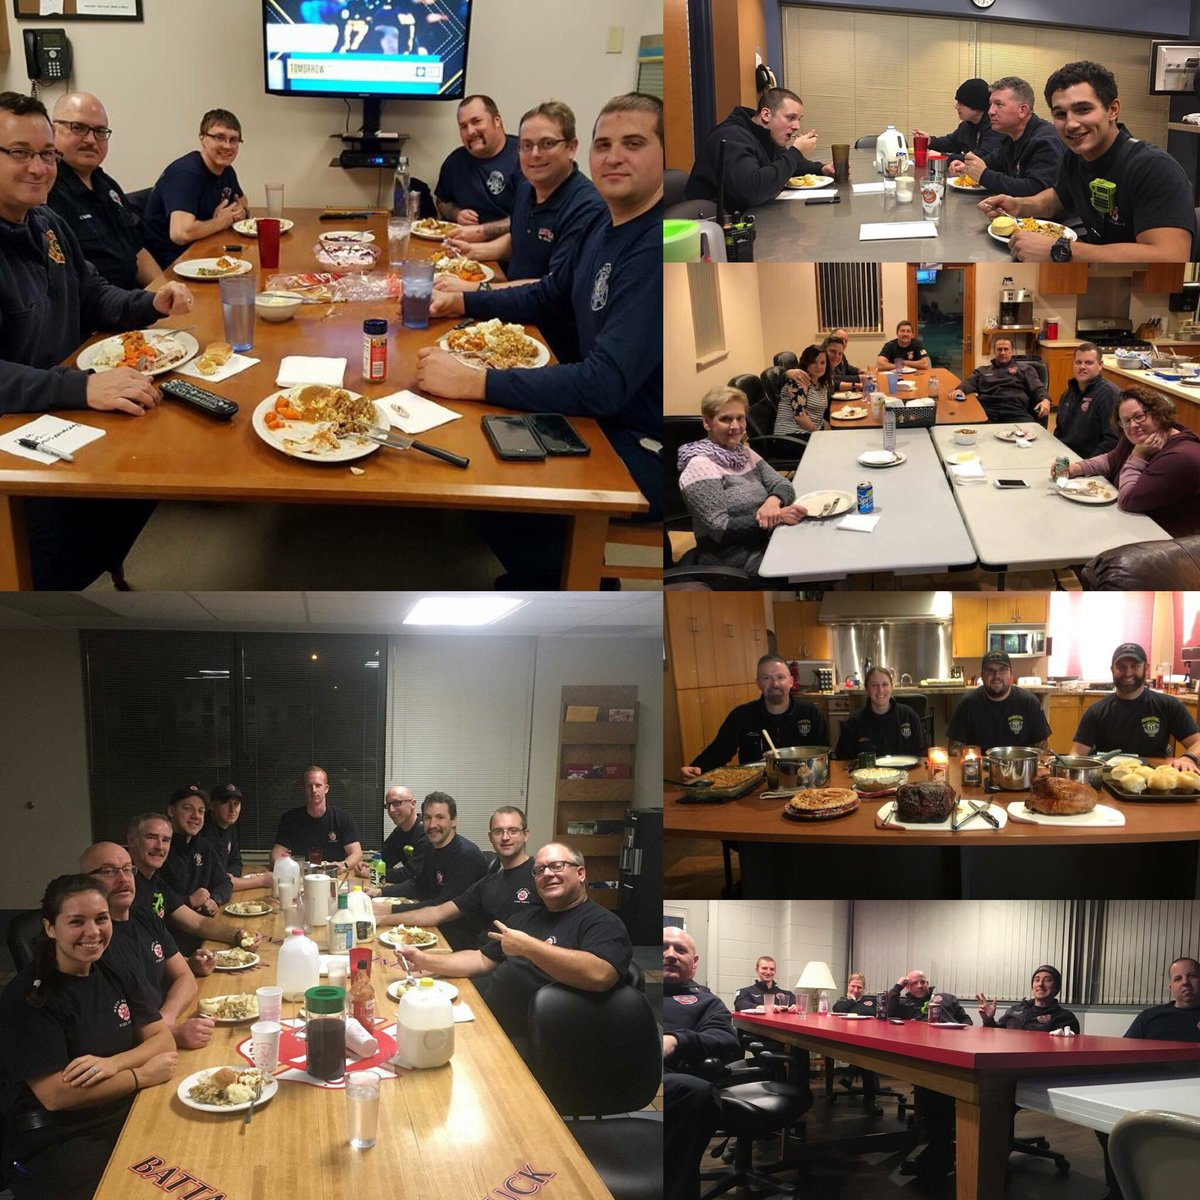 From our families in Stations all across #Wisconsin to your family and your home...Happy #Thanksgiving<br>http://pic.twitter.com/sU8szXDNda